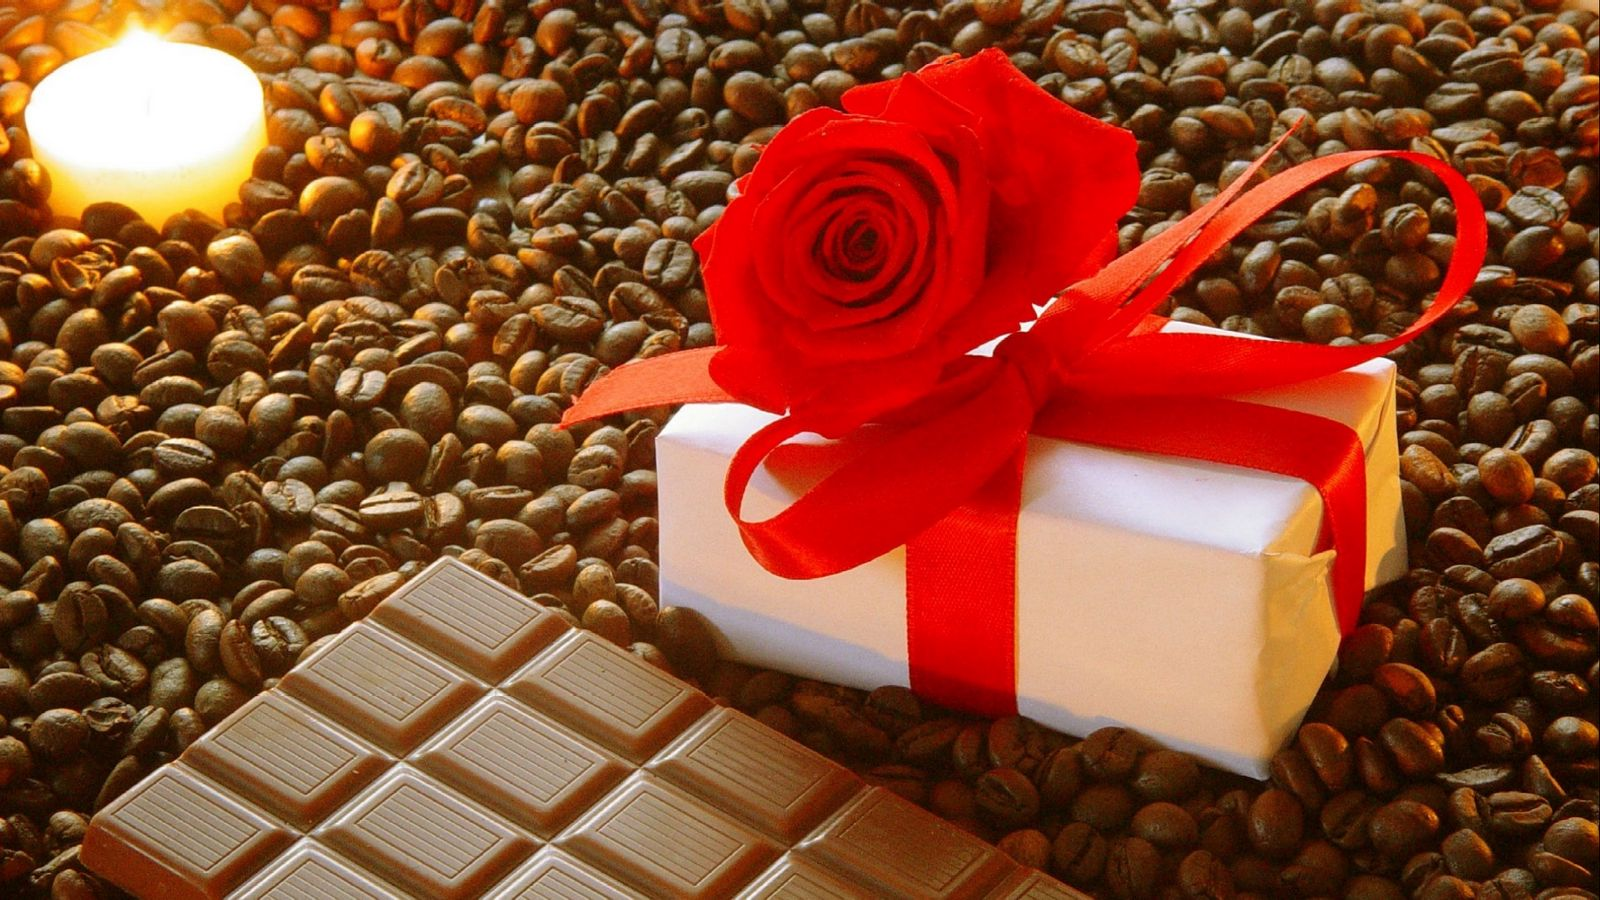 1600x900 Wallpaper gift, ribbon, rose, chocolate, coffee, corn, candle, romantic, holiday